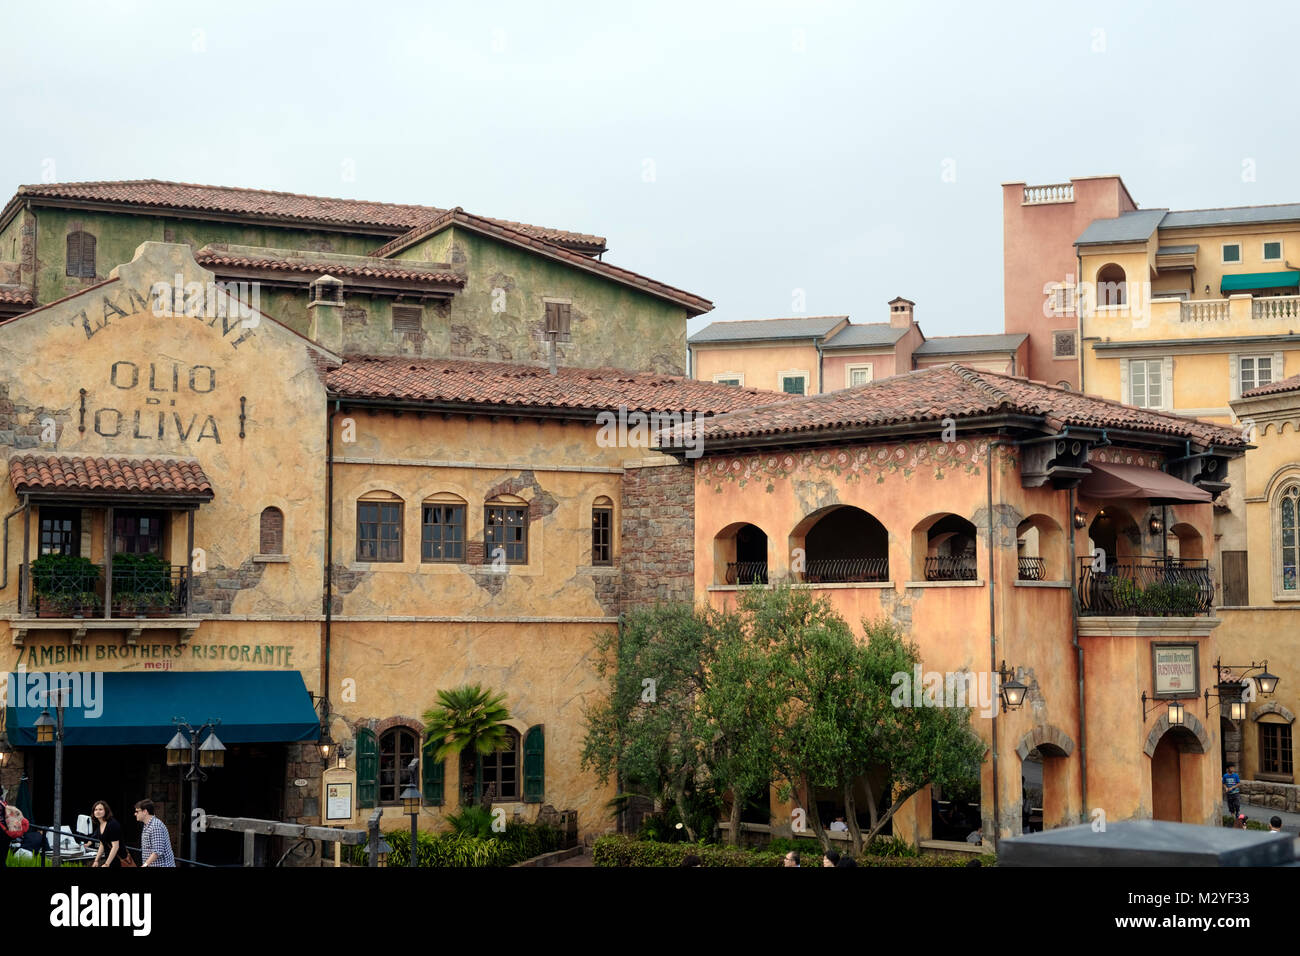 Tuscany Italy style architecture. Weathered old pale orange buildings with terracotta tiled roofs. Restaurant with - Stock Image